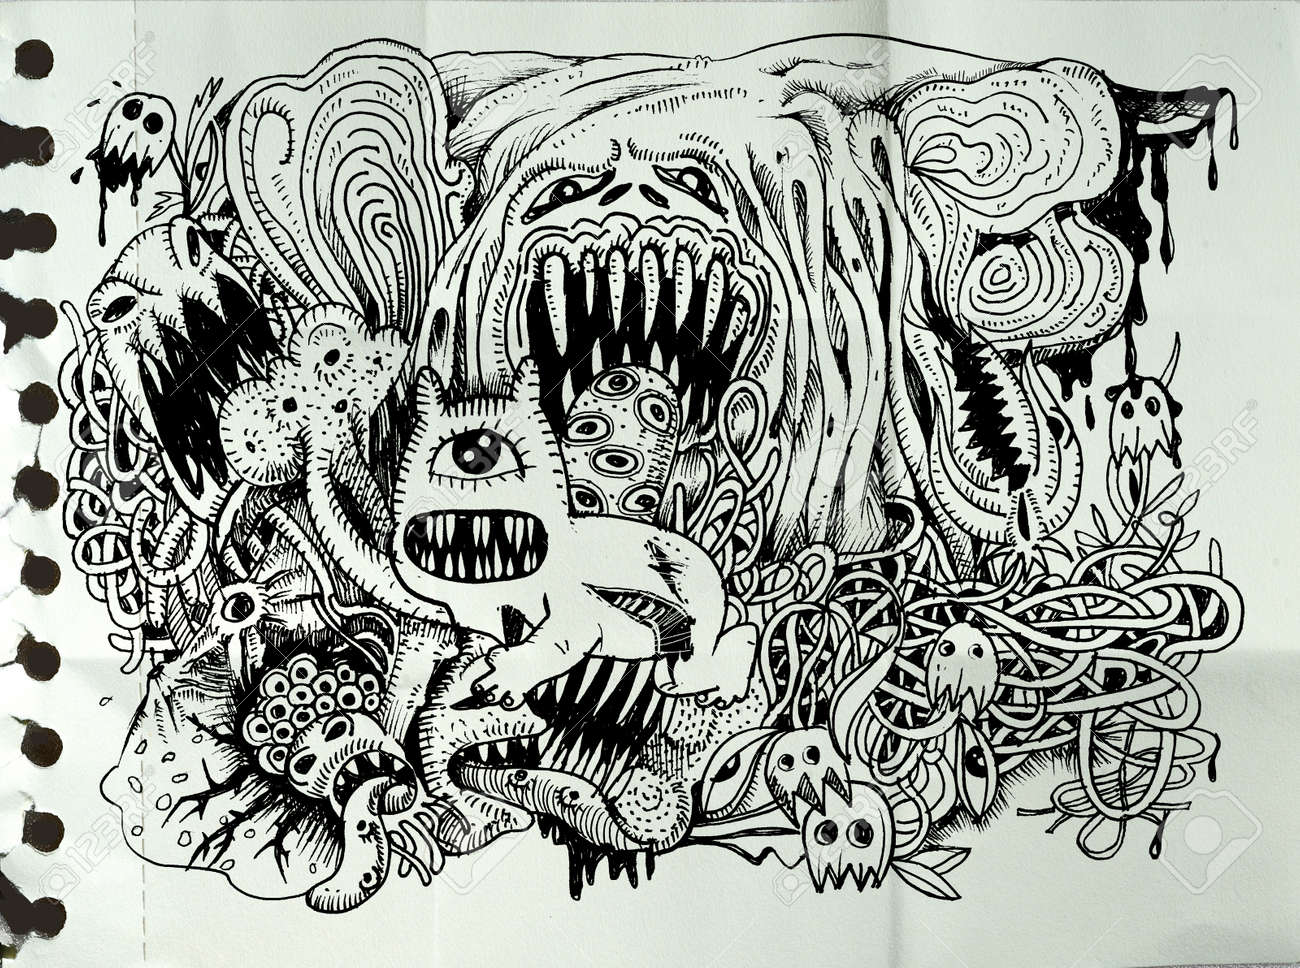 Line Drawing Monster : Monster drawing hand drawn with combination lines vector